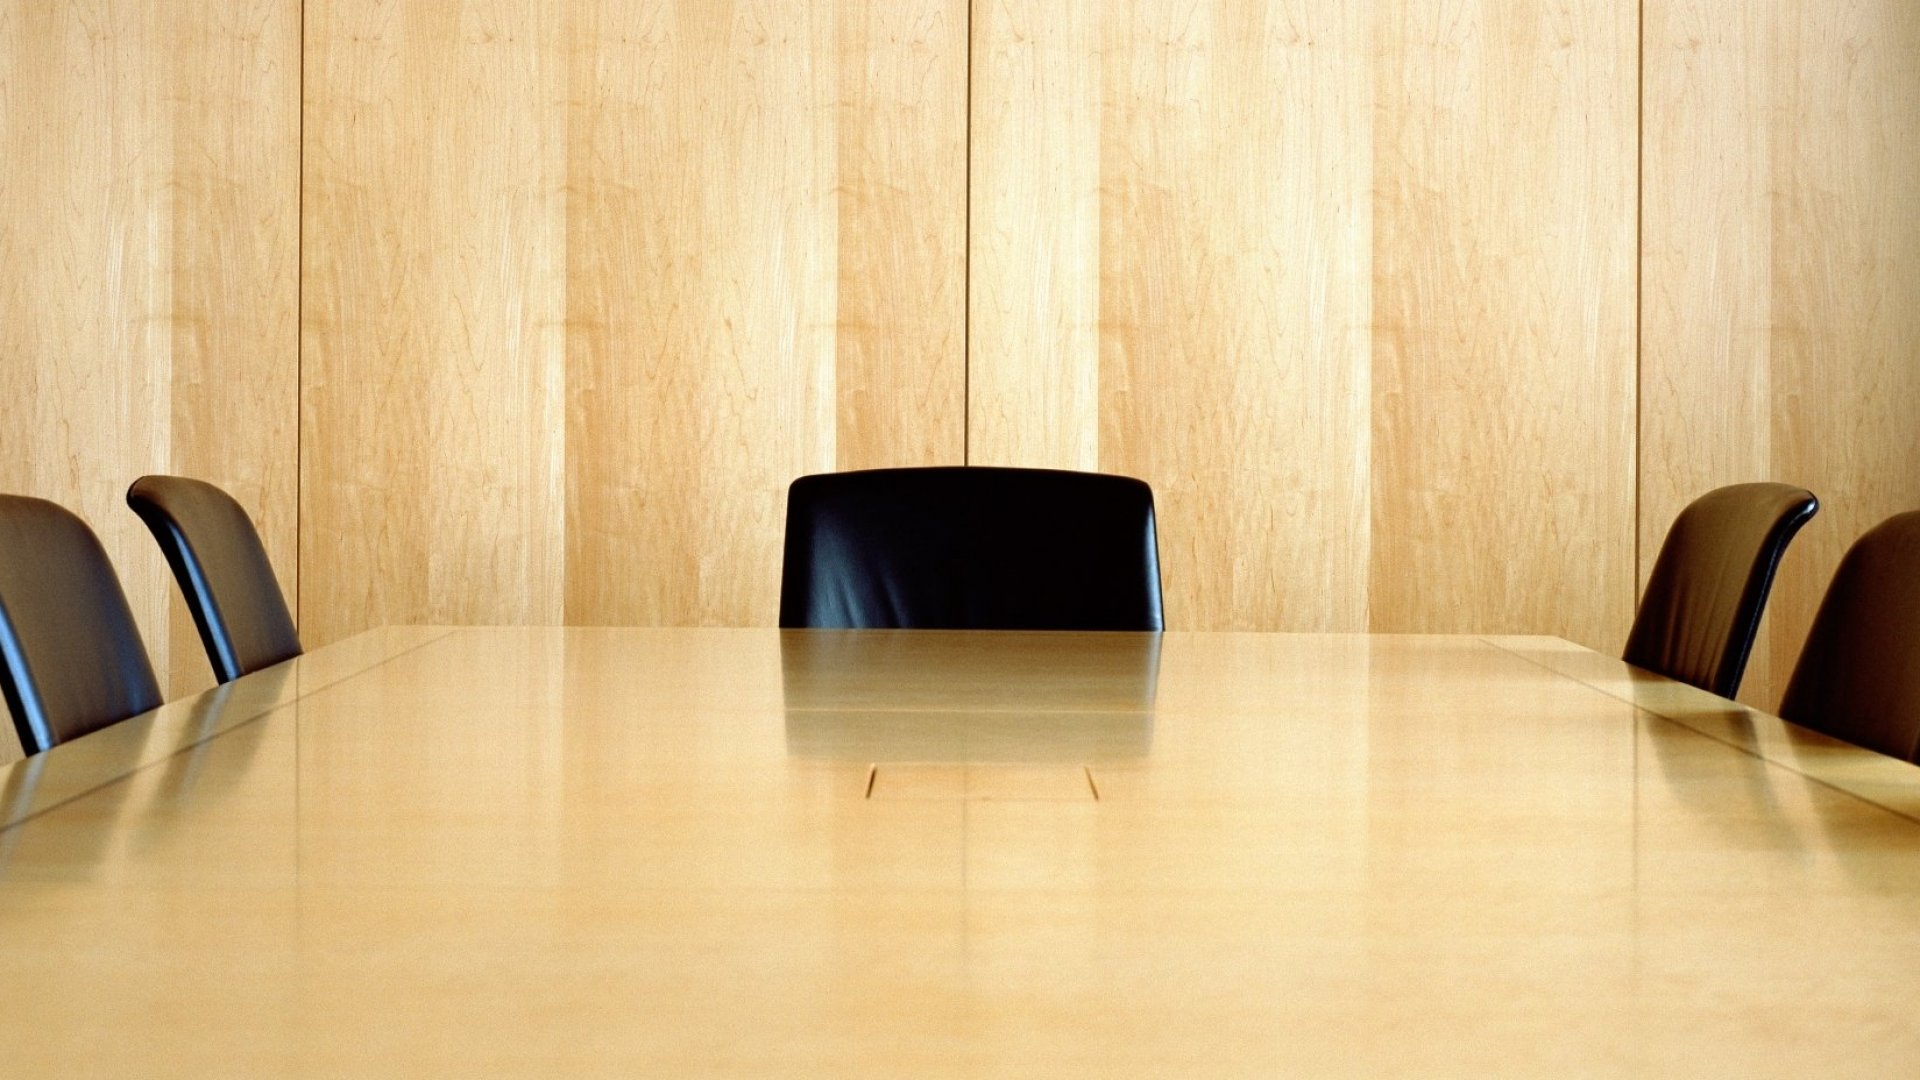 How to Have Board Meetings People Actually Want to Attend